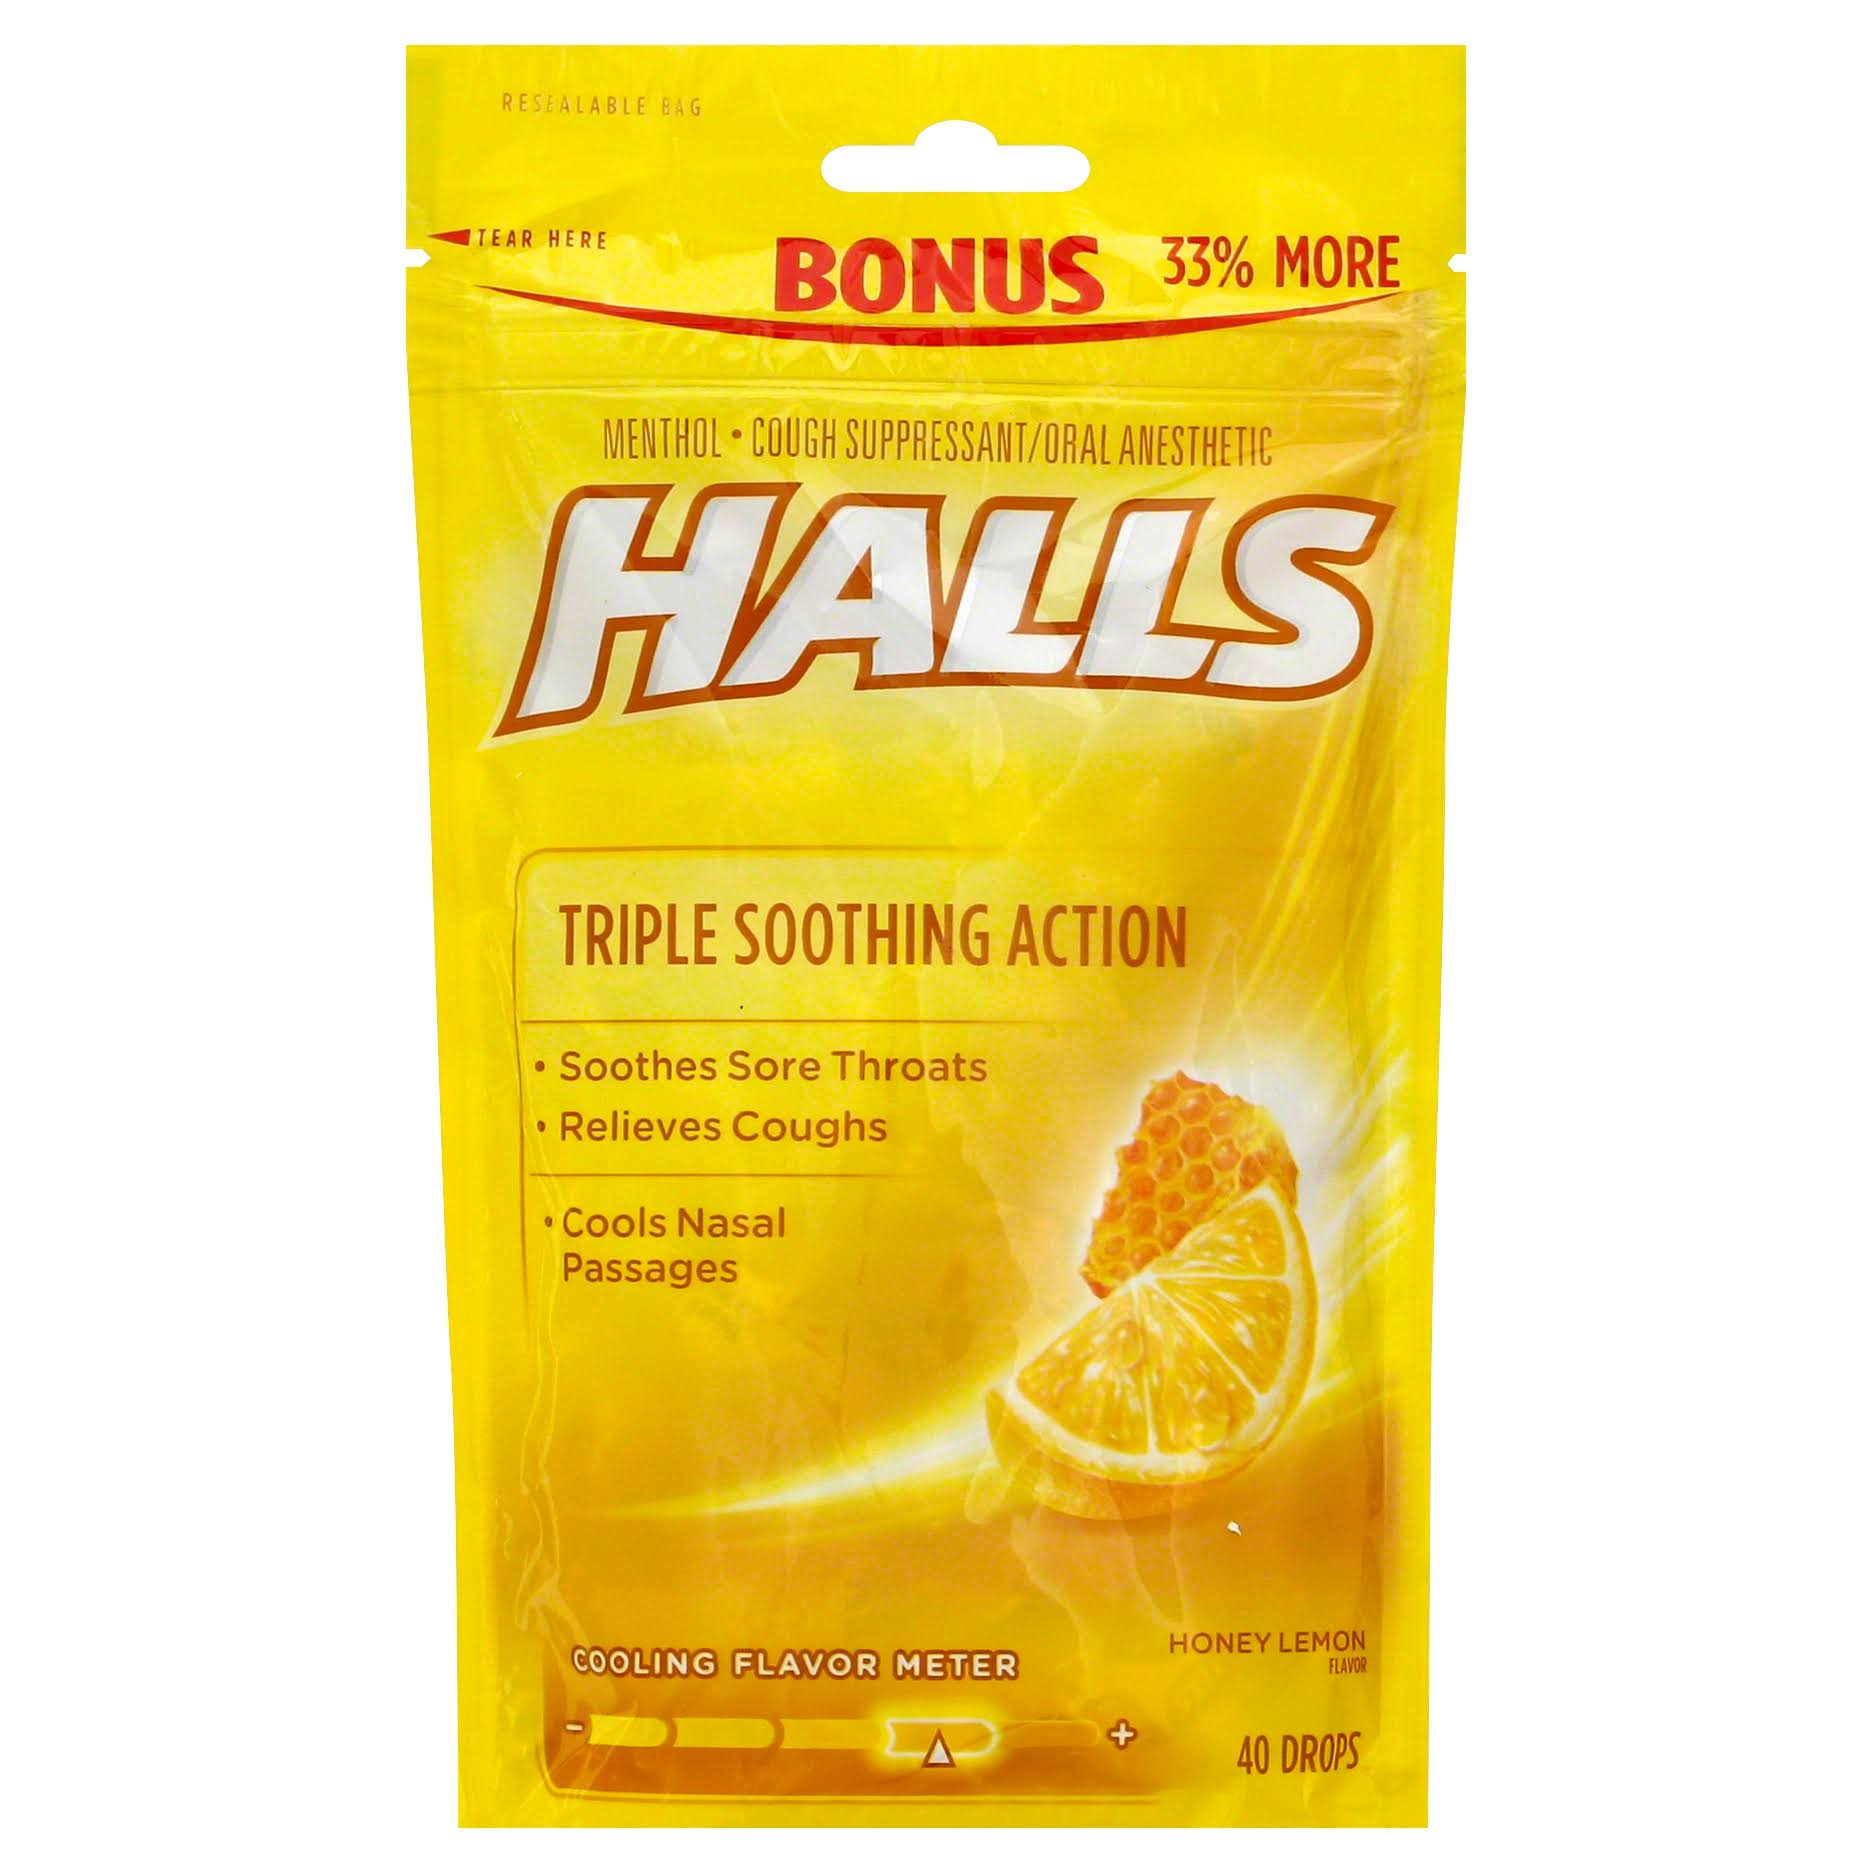 Halls Honey Lemon Cough Drops - 40 Drops